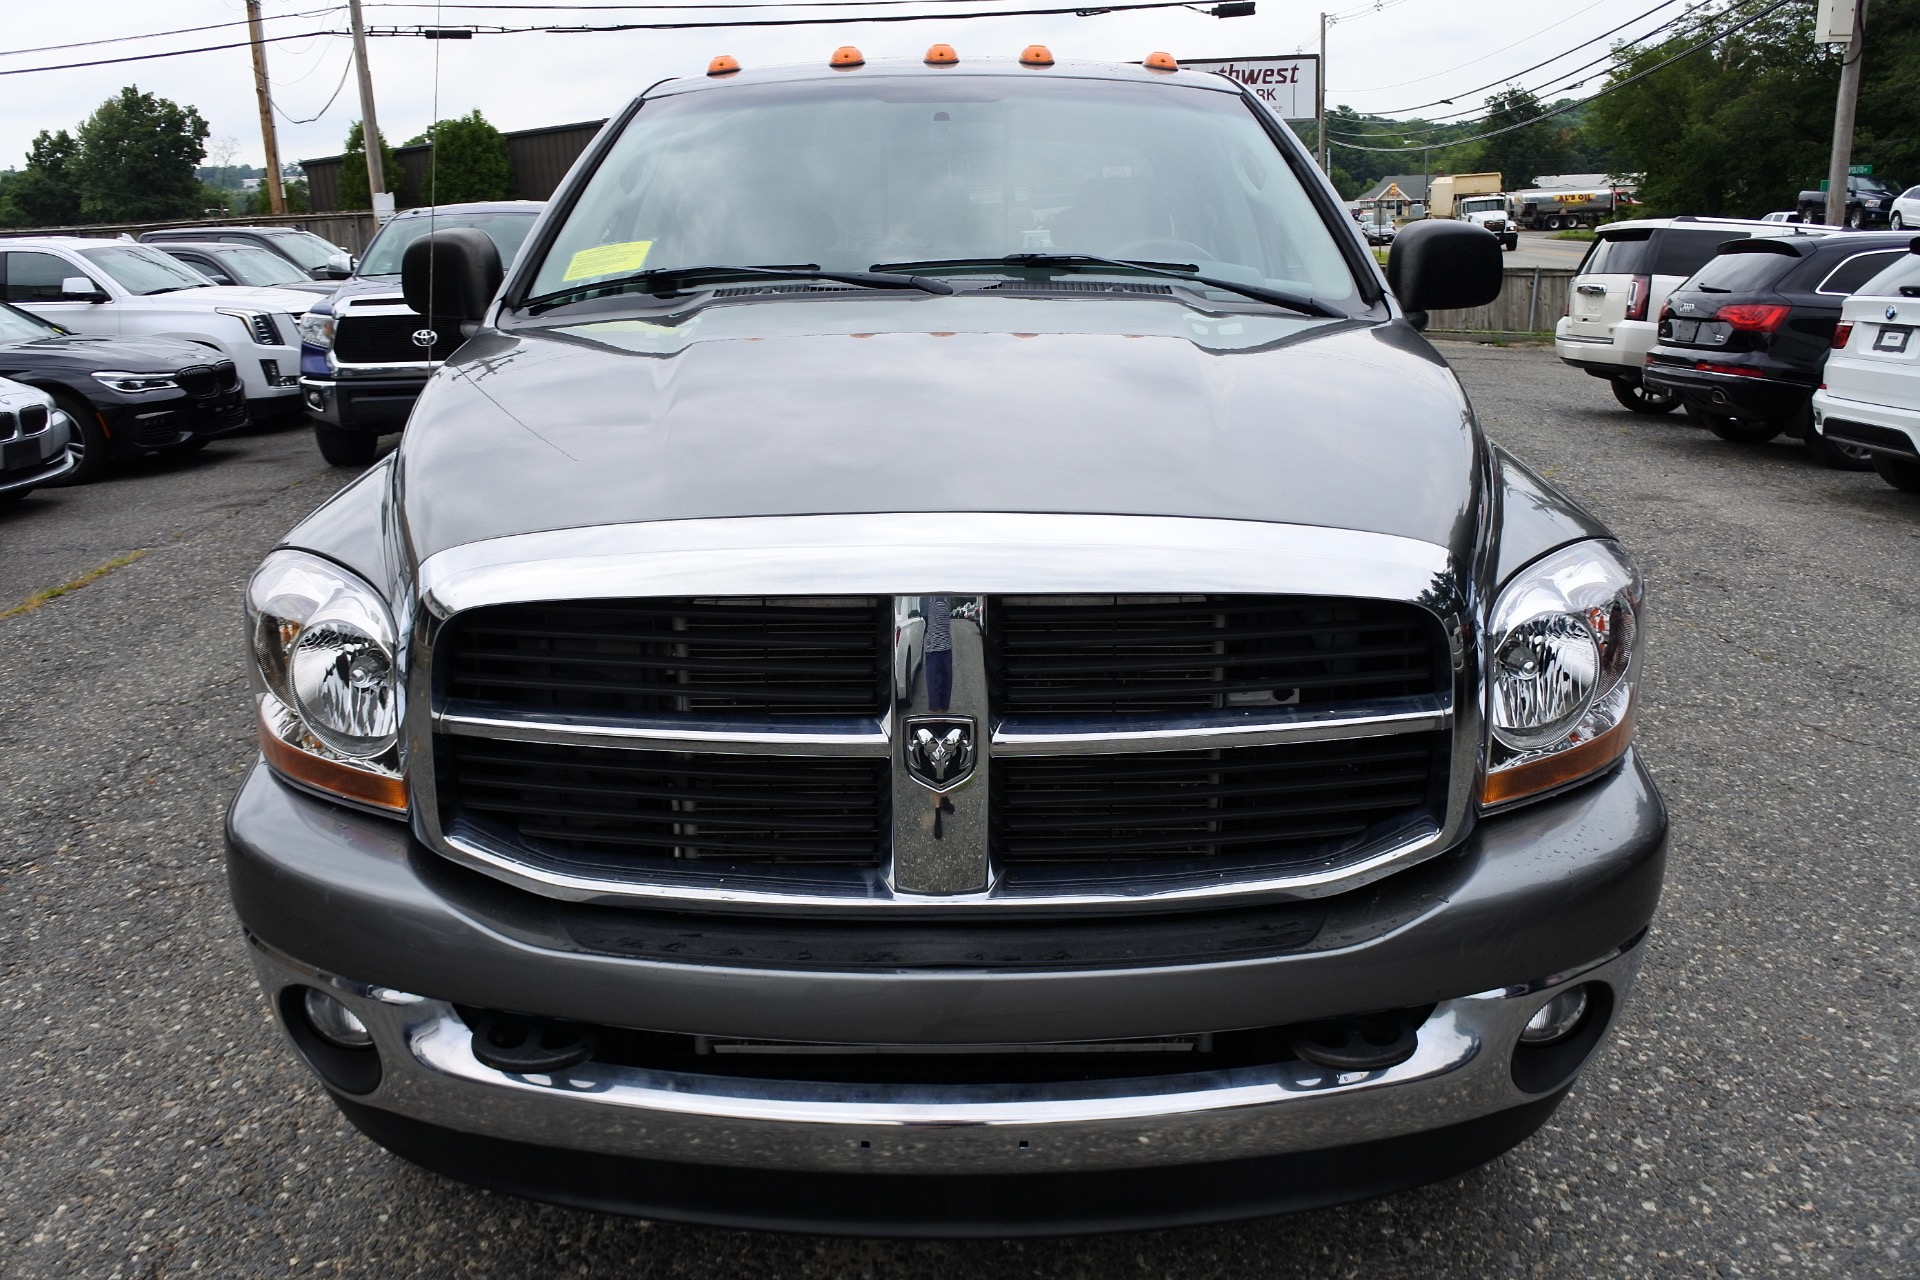 Used 2006 Dodge Ram 2500 4dr Quad Cab 140.5 4WD SLT Used 2006 Dodge Ram 2500 4dr Quad Cab 140.5 4WD SLT for sale  at Metro West Motorcars LLC in Shrewsbury MA 8